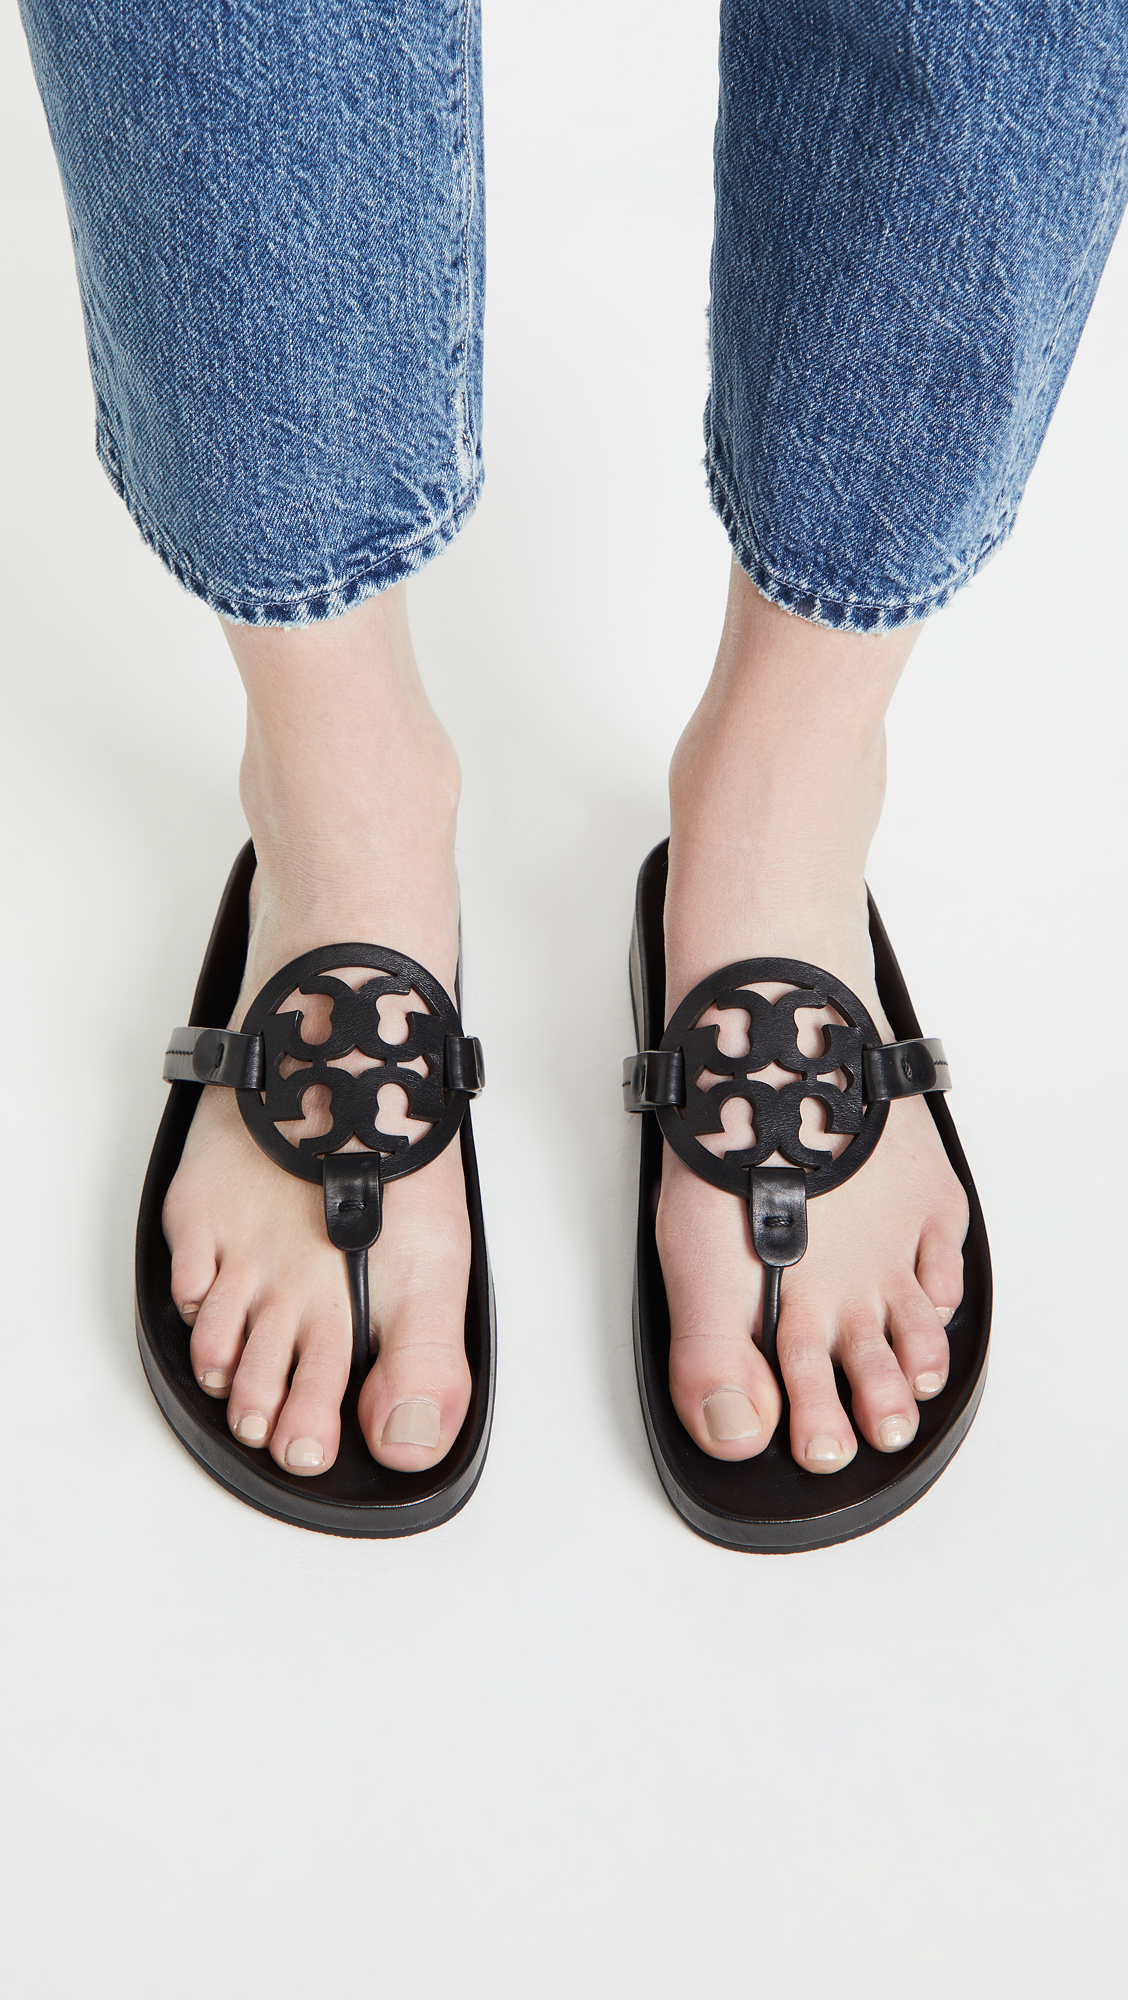 woman wearing Tory Burch Miller Cloud Sandals and blue jeans